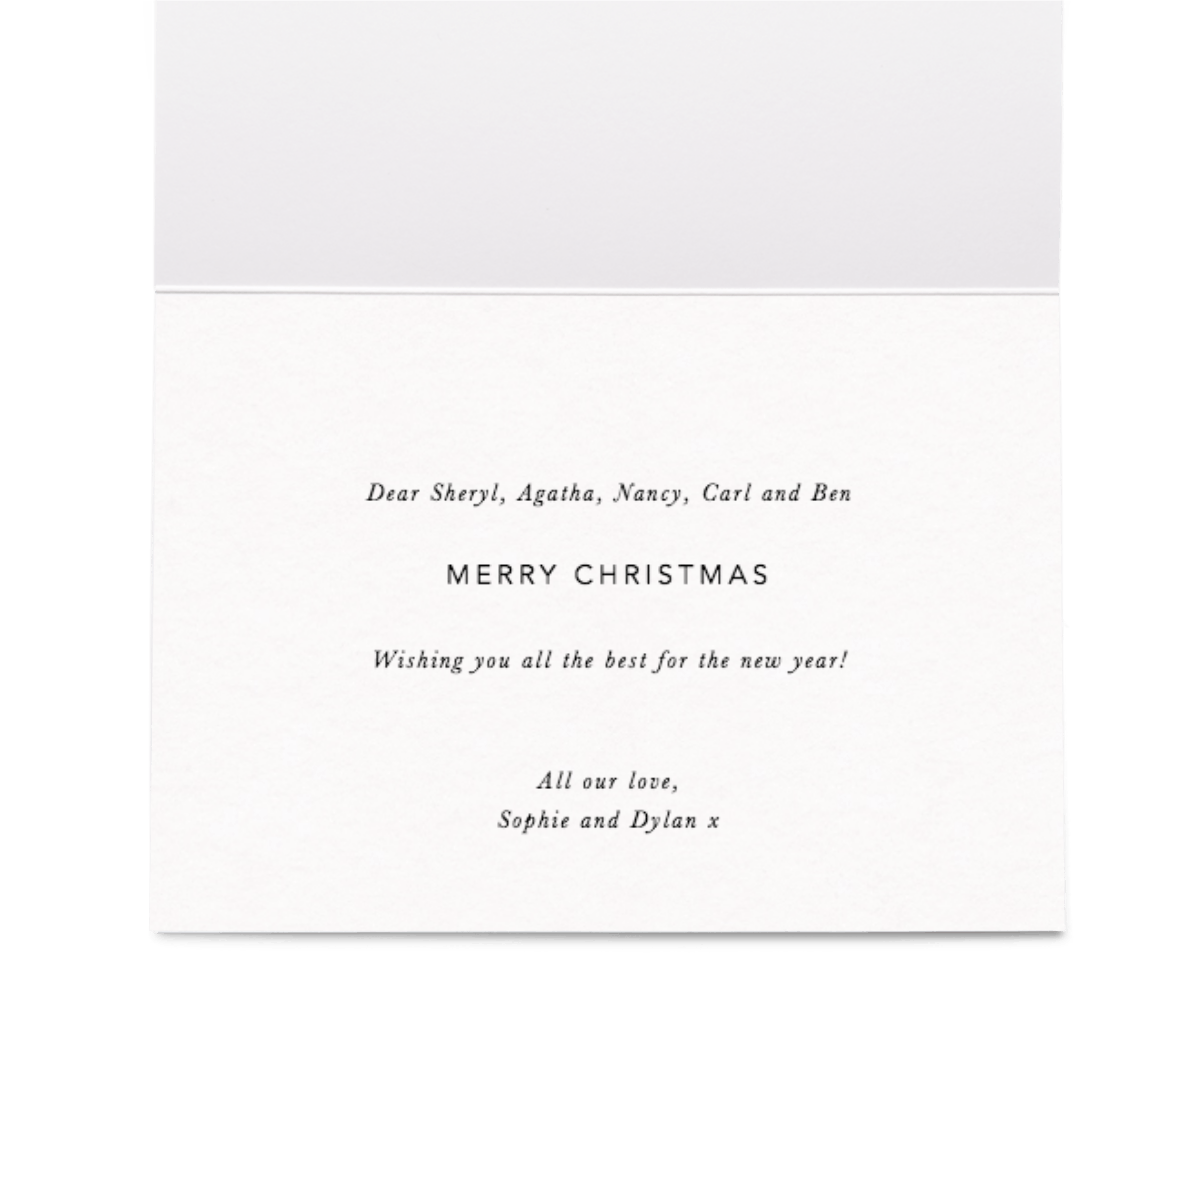 Https%3a%2f%2fwww.papier.com%2fproduct image%2f30974%2f20%2fseason s greetings starry photo 6742 interieur 1509987281.png?ixlib=rb 1.1